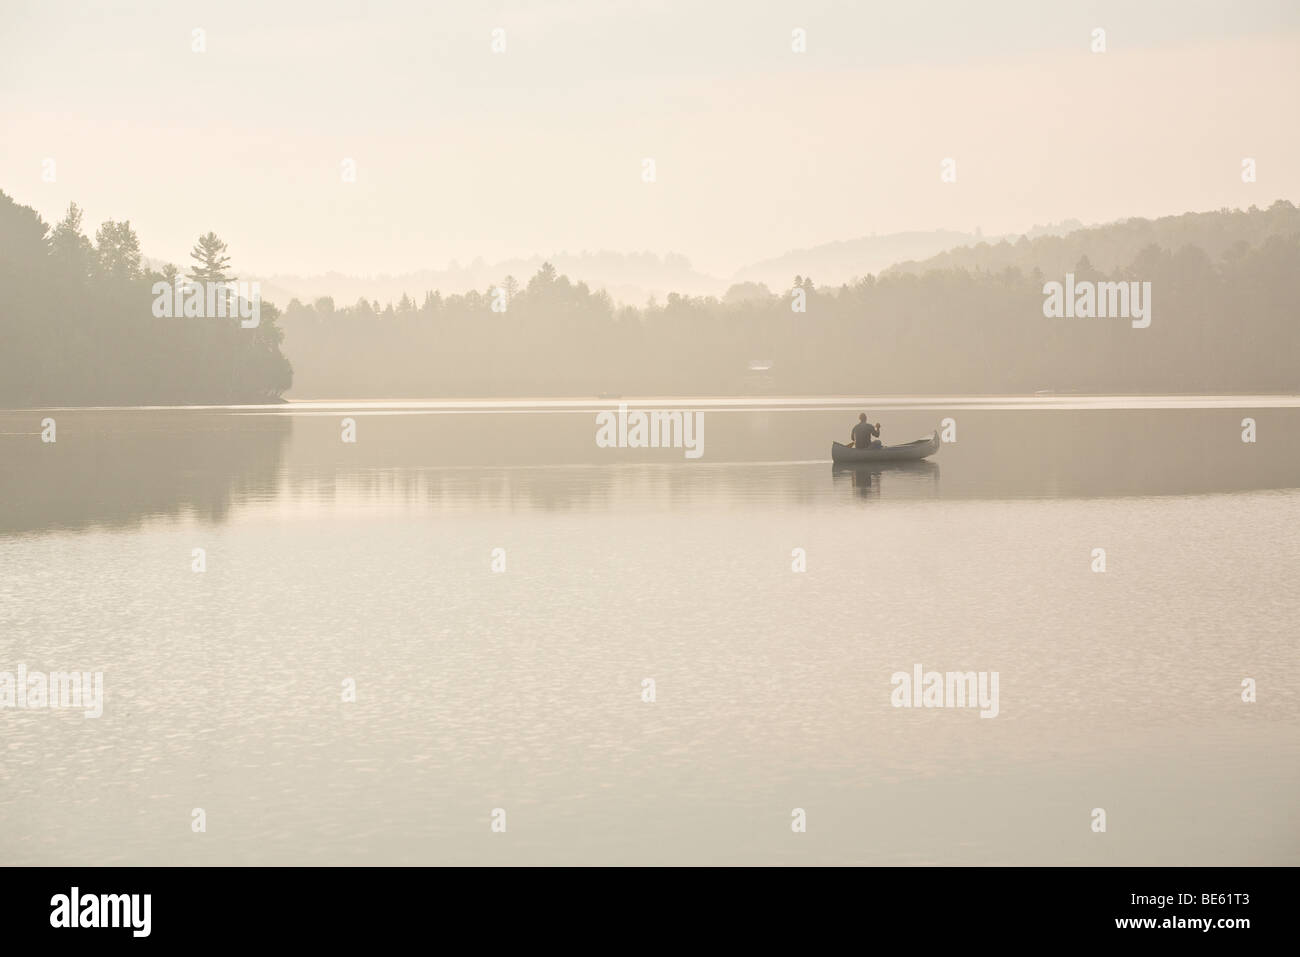 Early Morning Paddle. A single canoeist paddles on a misty early morning on calm lake surrounded by trees. - Stock Image